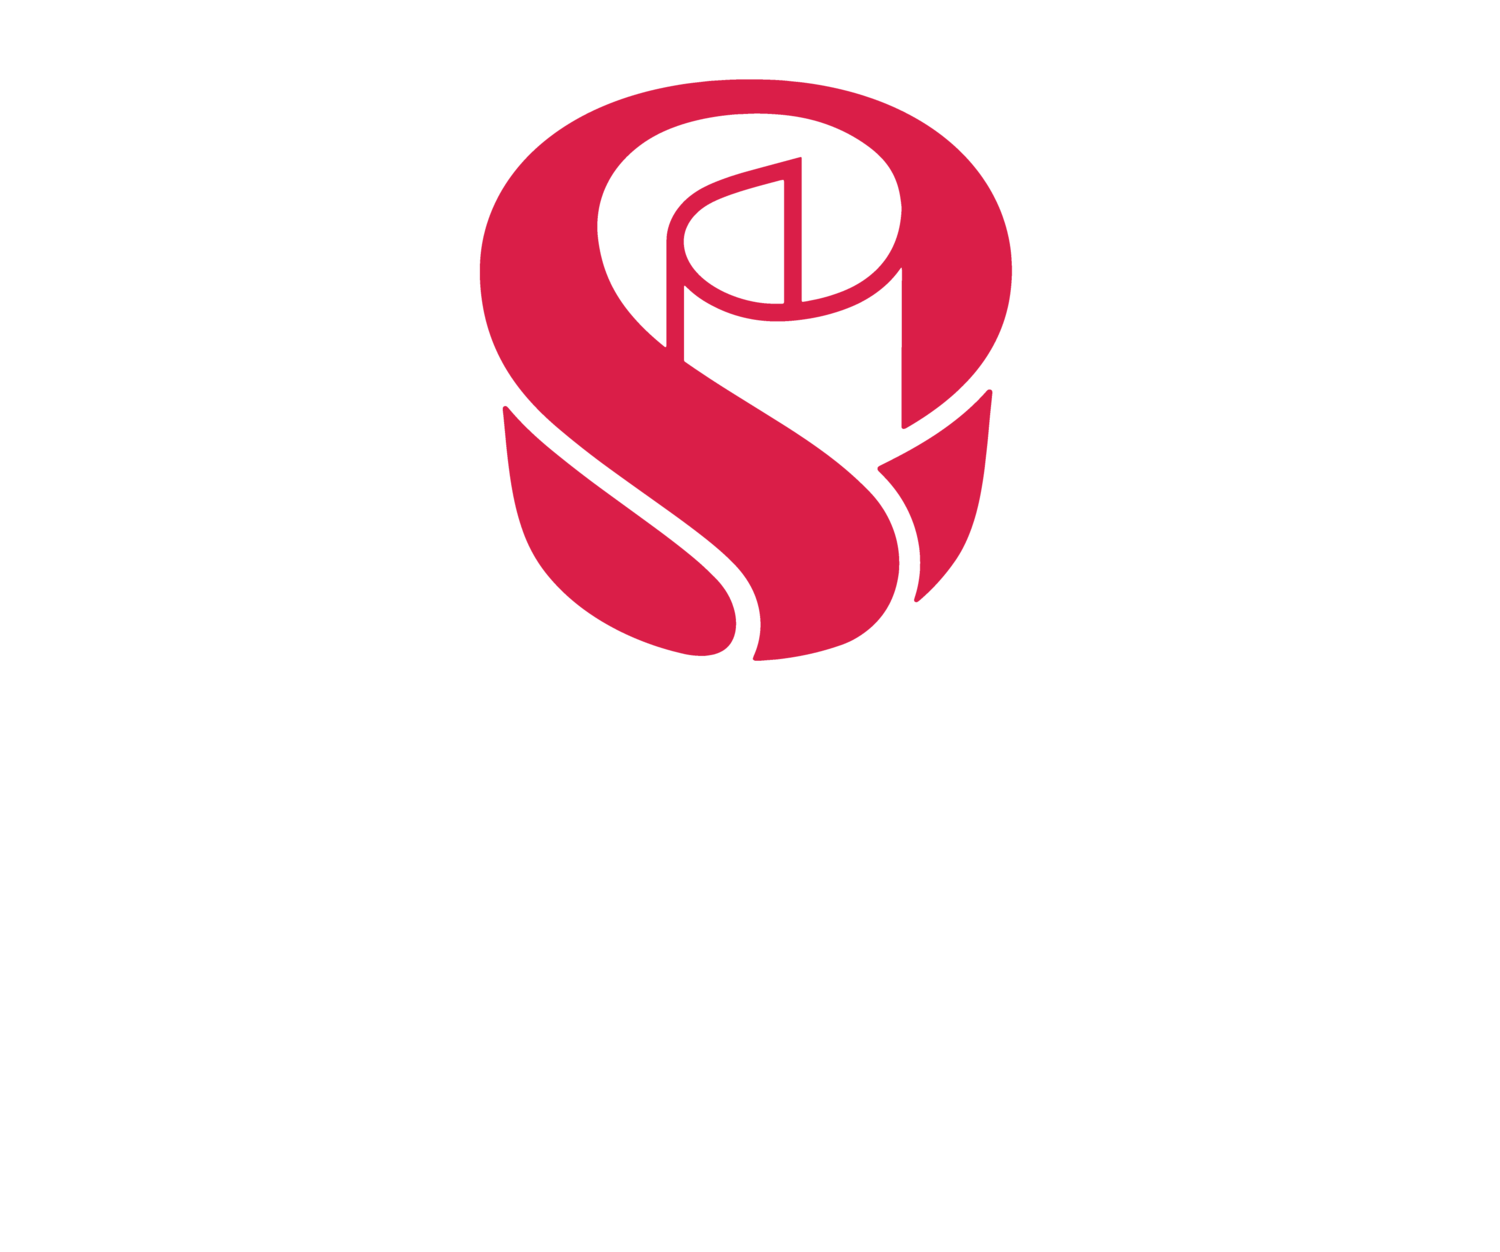 Southland Printing Company